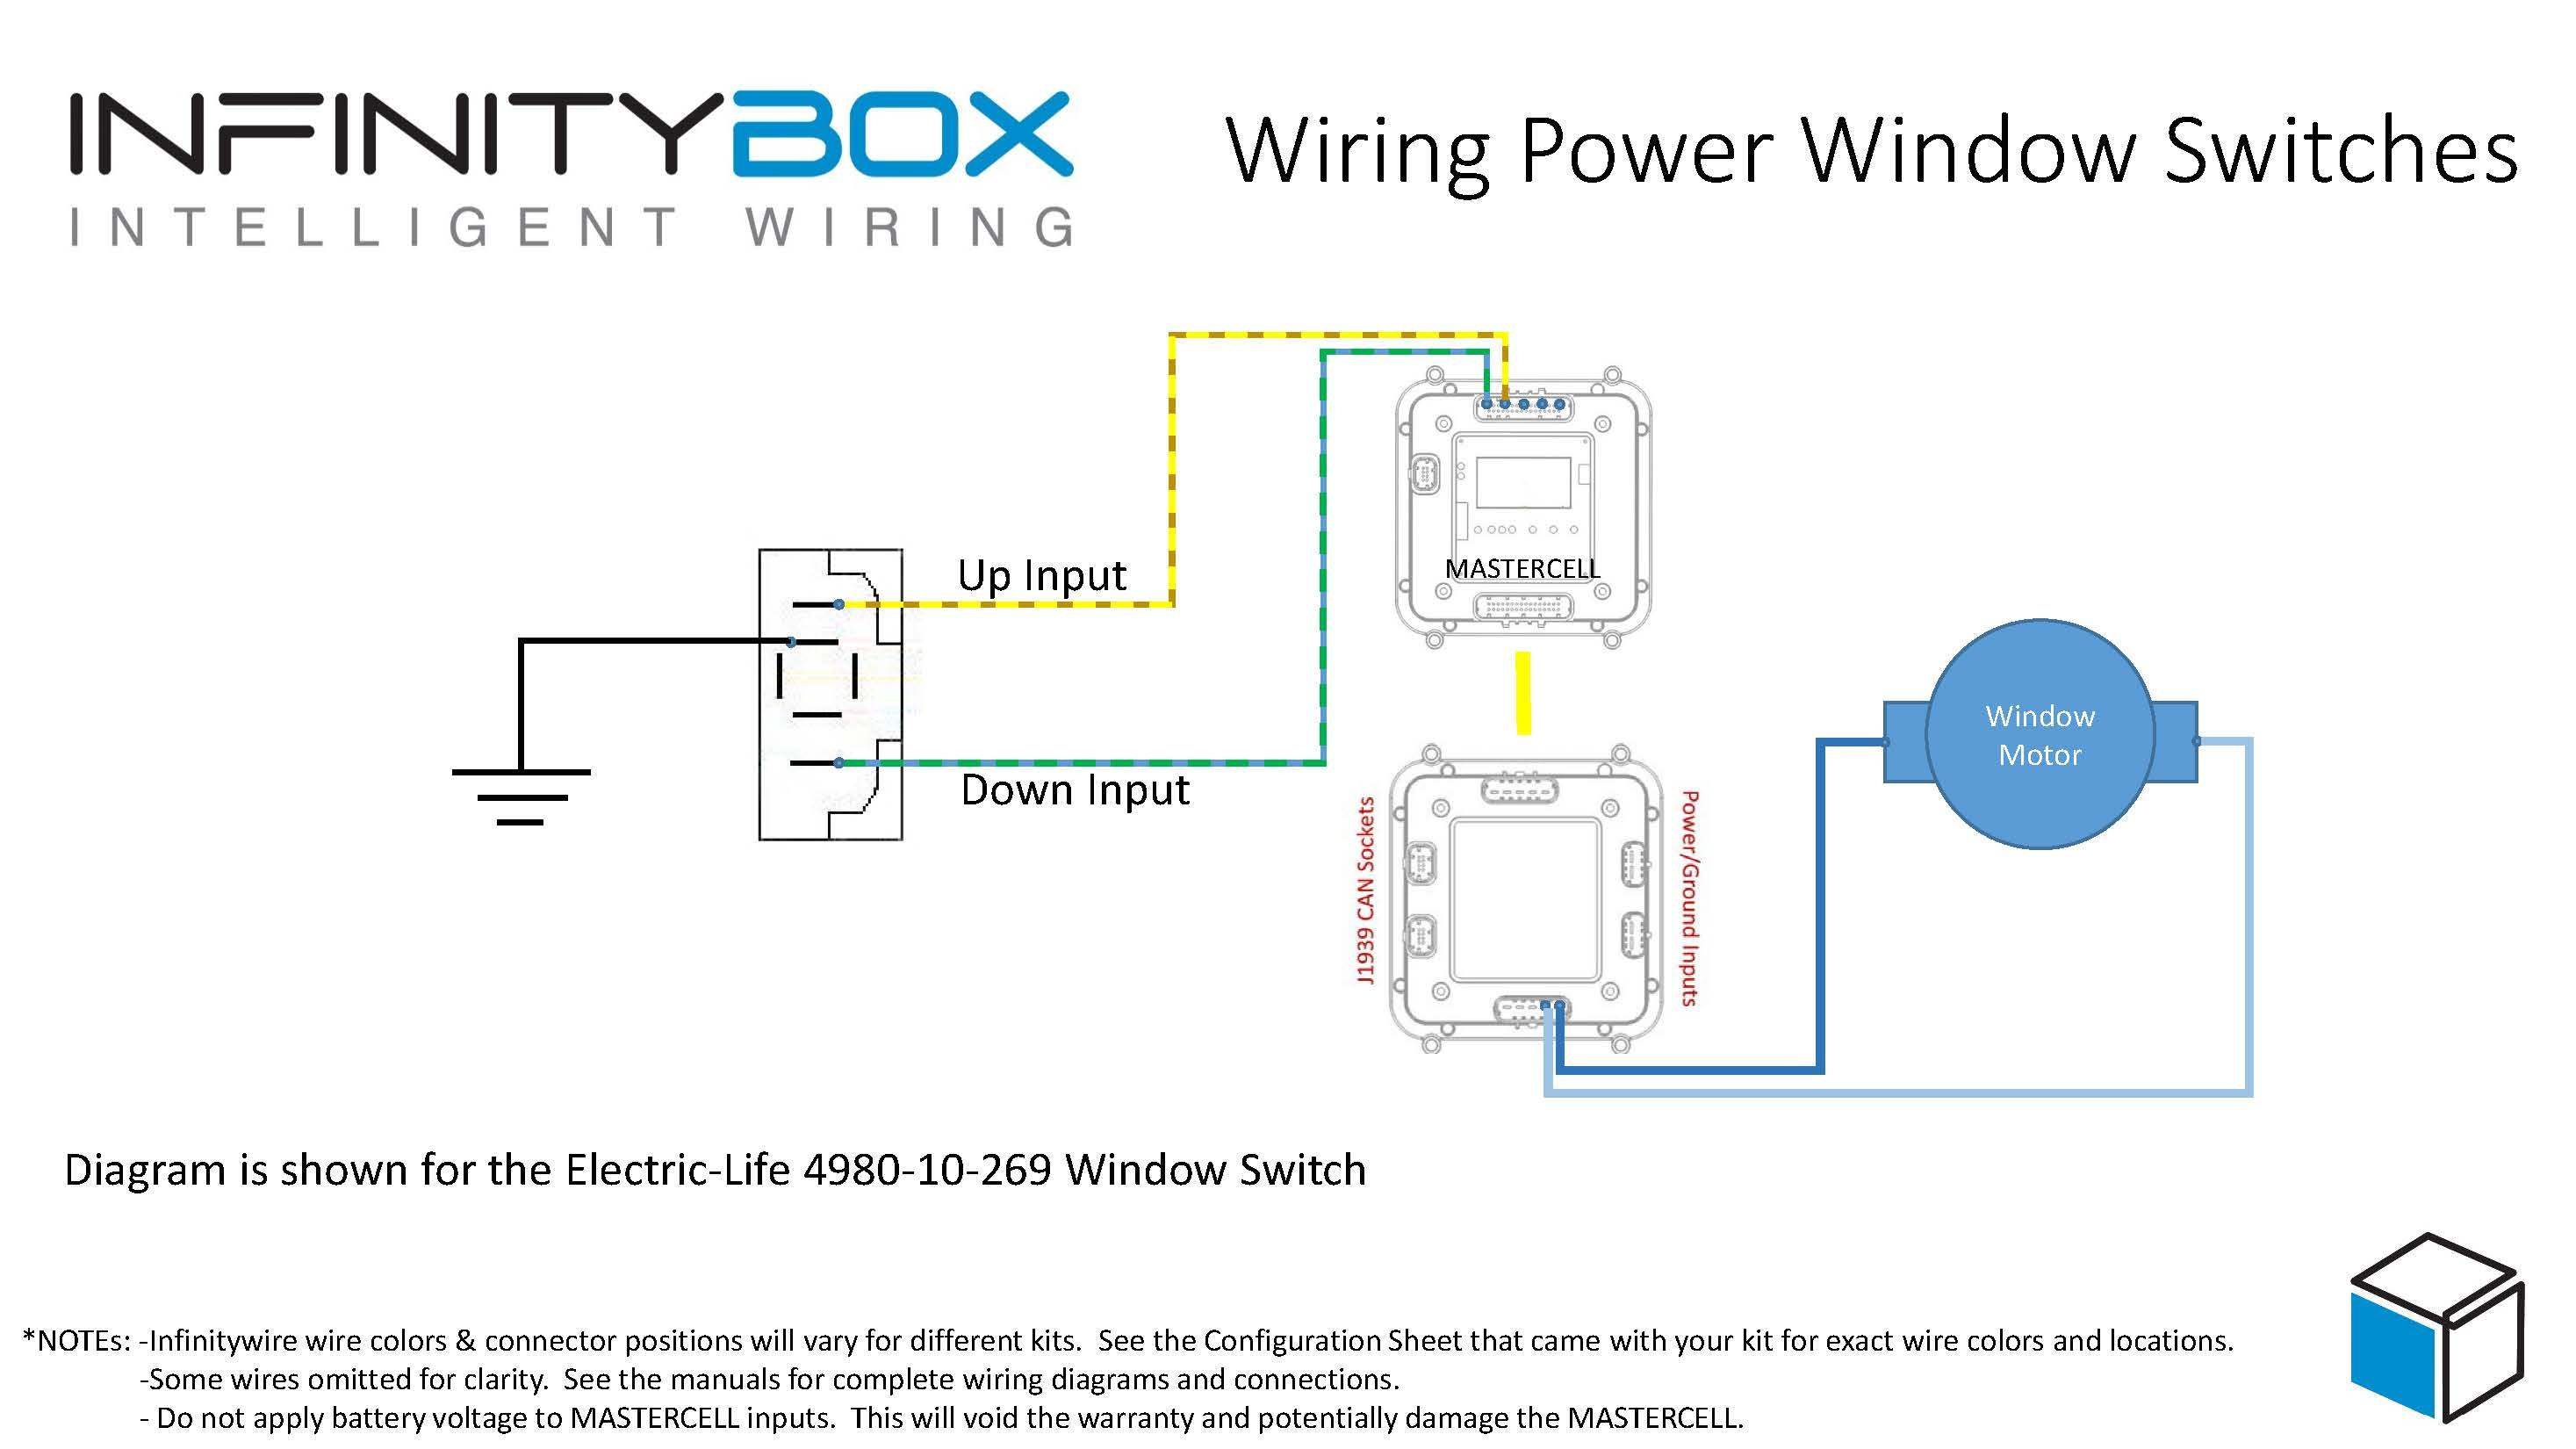 5 Wire Window Switch Diagram | Wiring Library - 5 Pin Power Window Switch Wiring Diagram